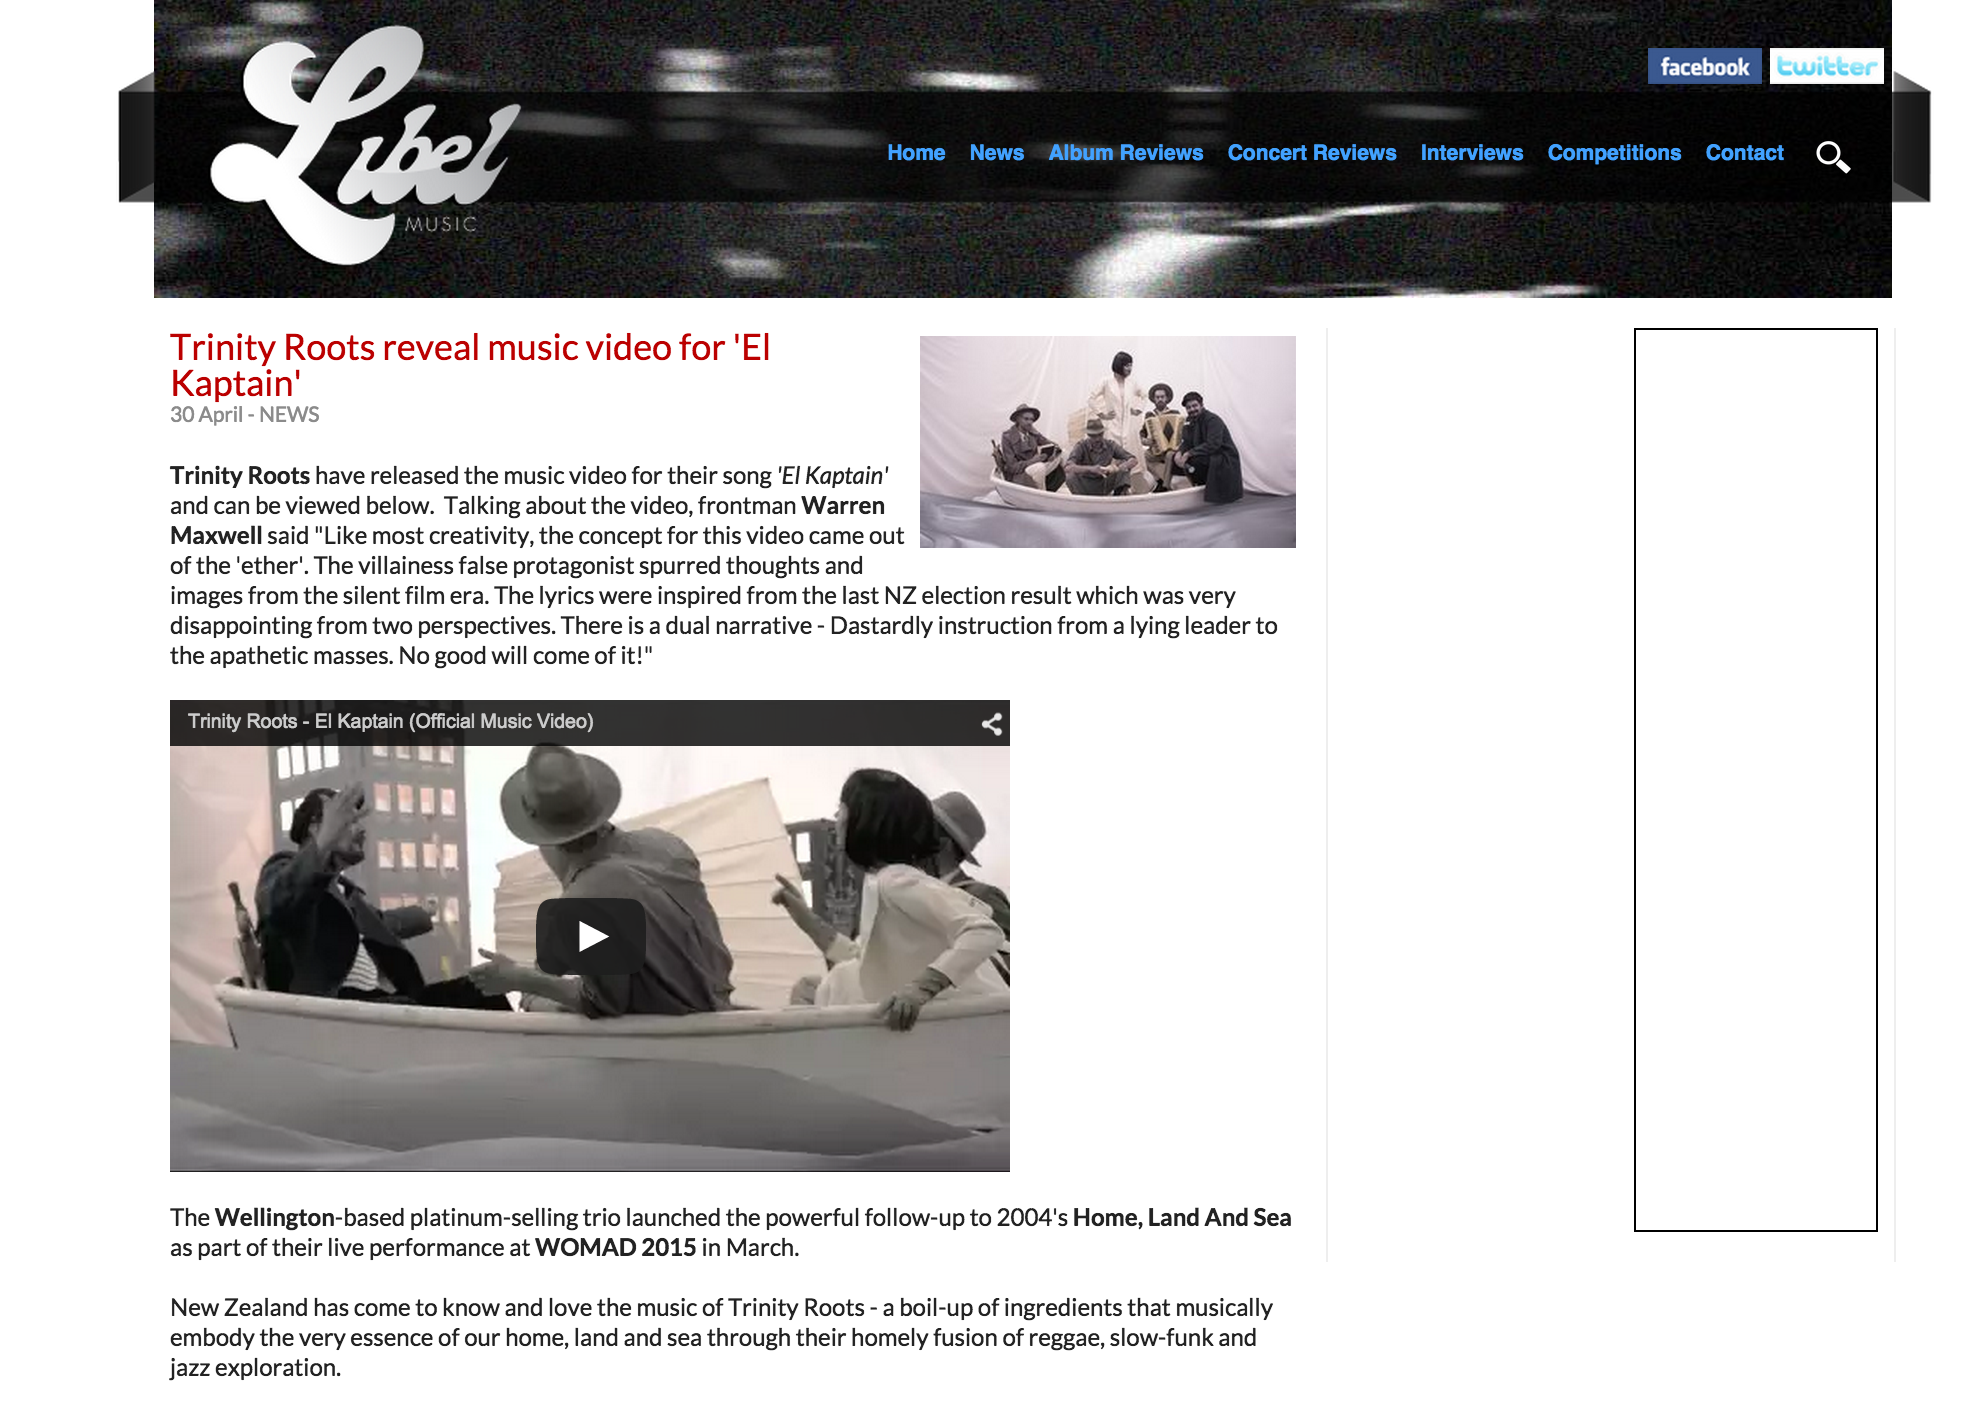 """Libel NZ featuringour video for Trinity Roots """"El Kaptain"""""""